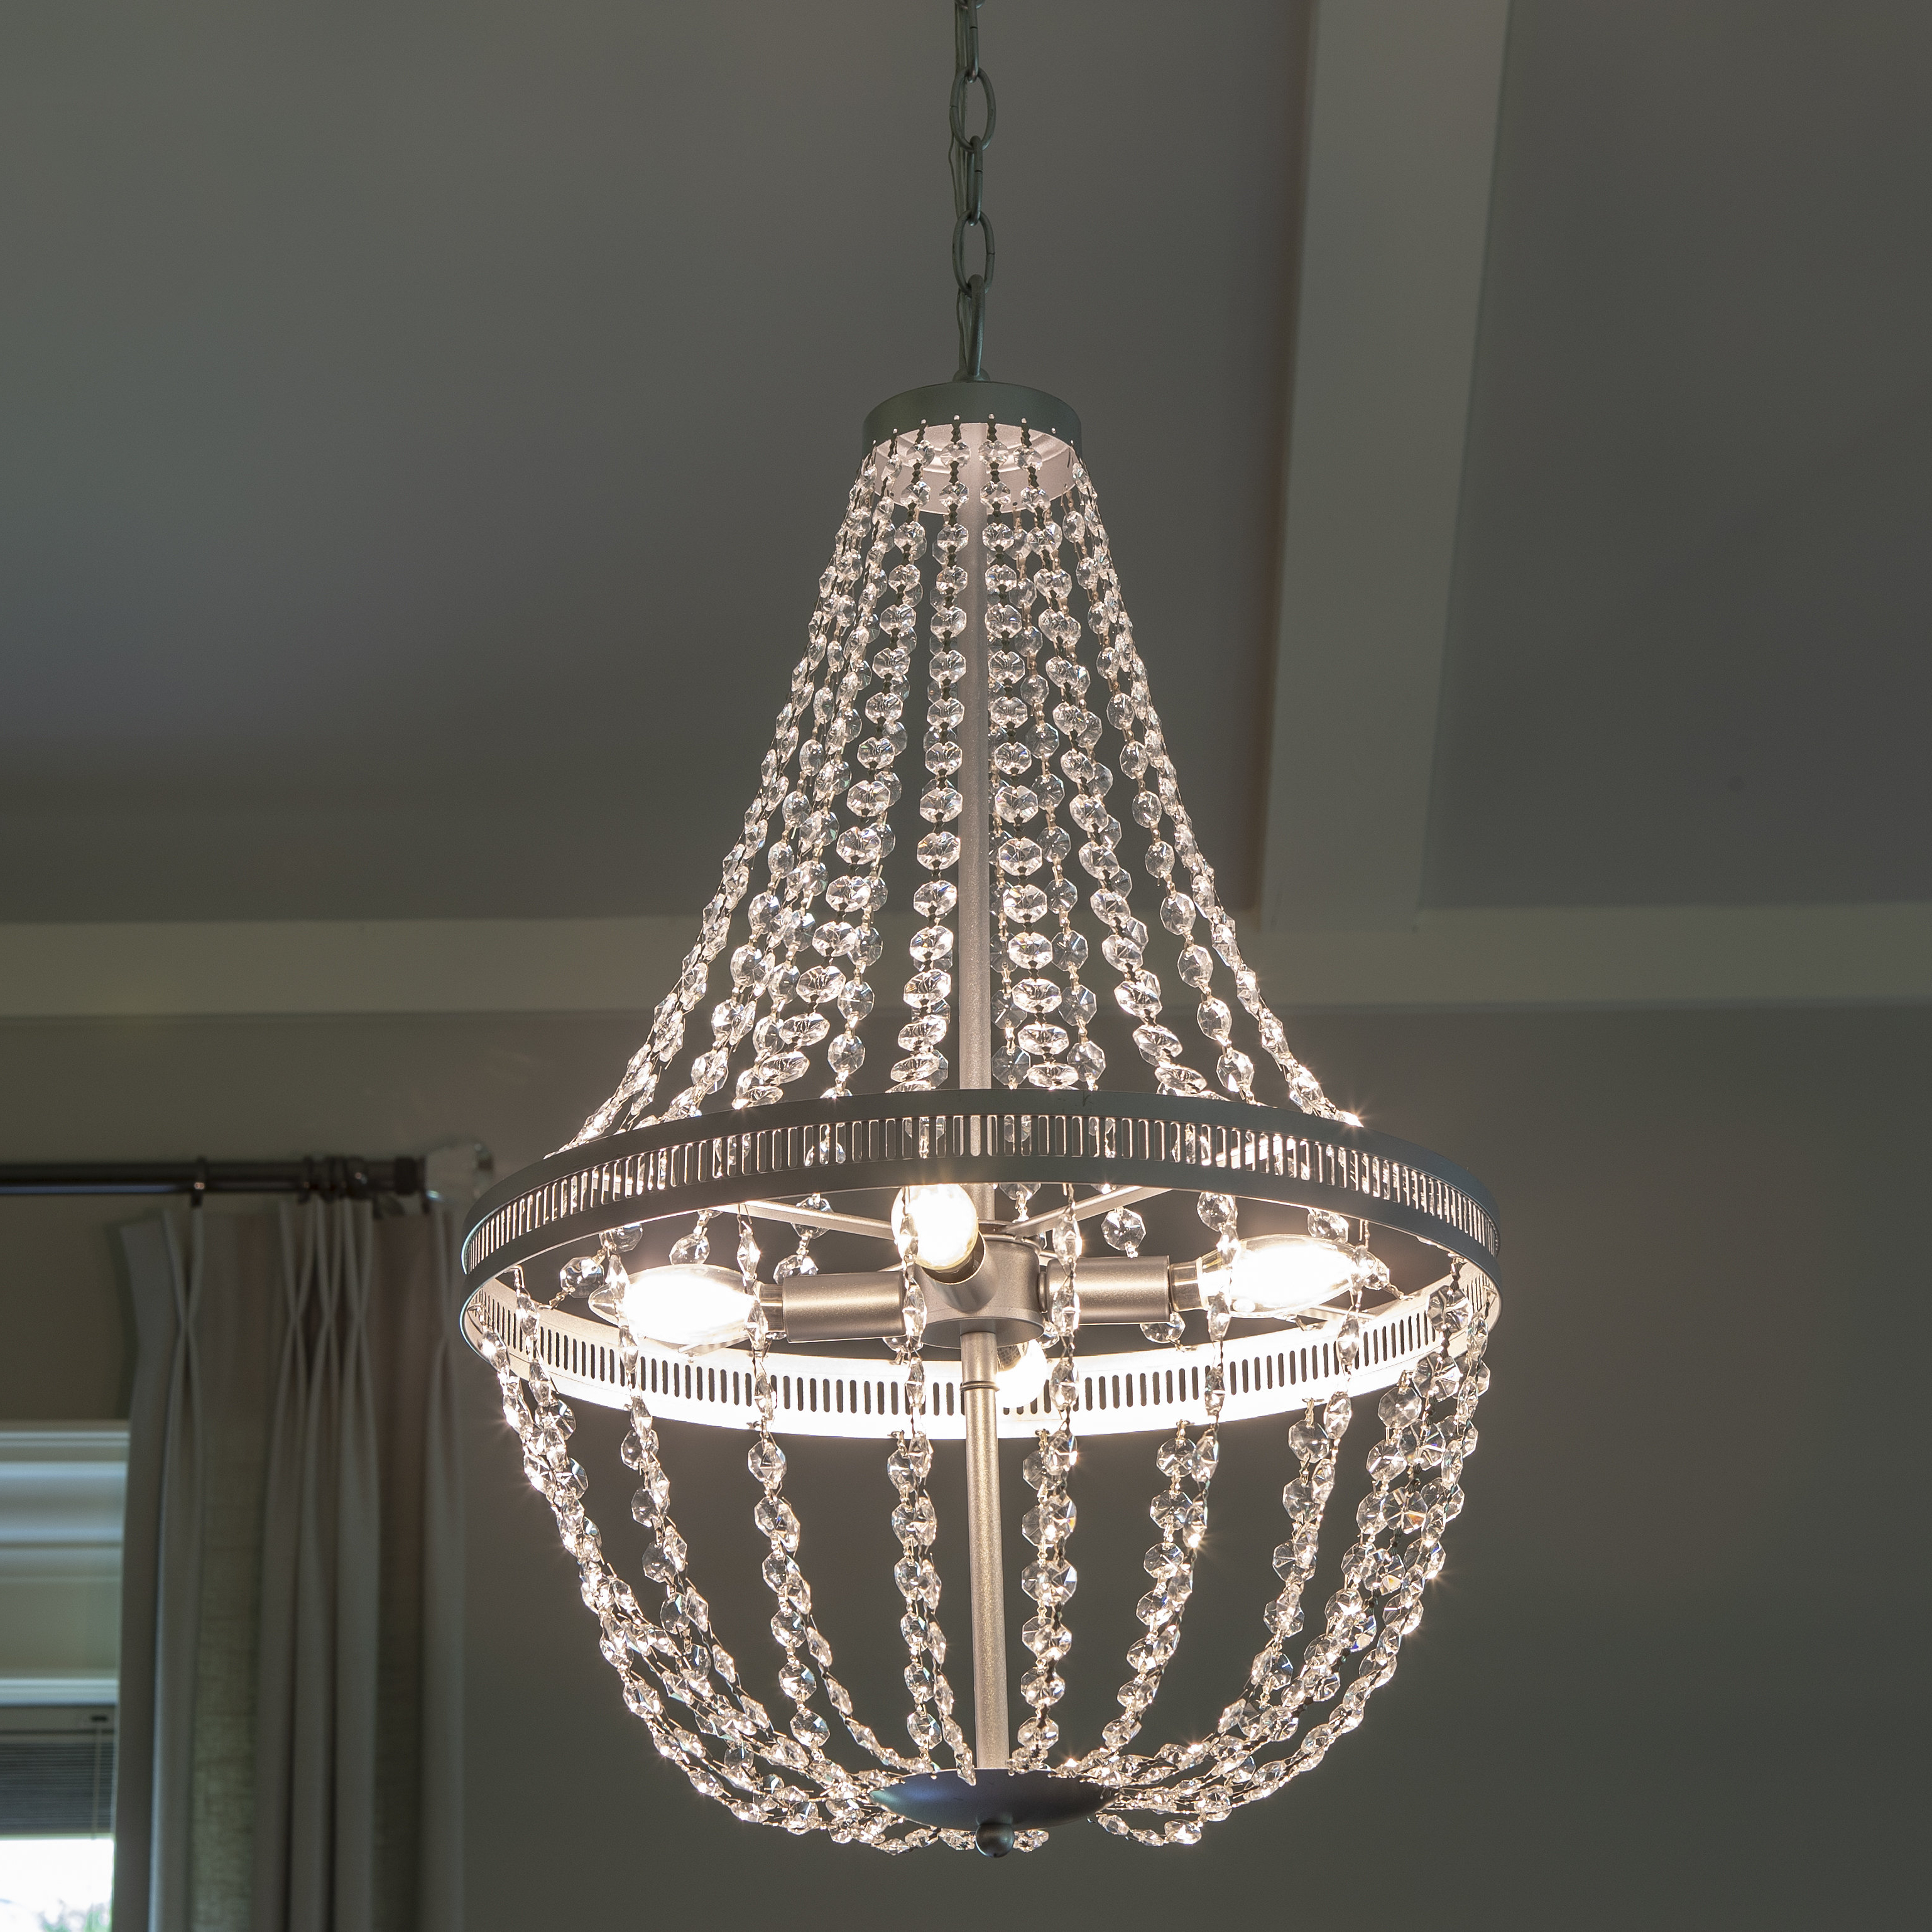 Aldgate 4 Light Crystal Chandeliers Regarding Favorite Weidman 4 Light Crystal Chandelier (View 5 of 20)